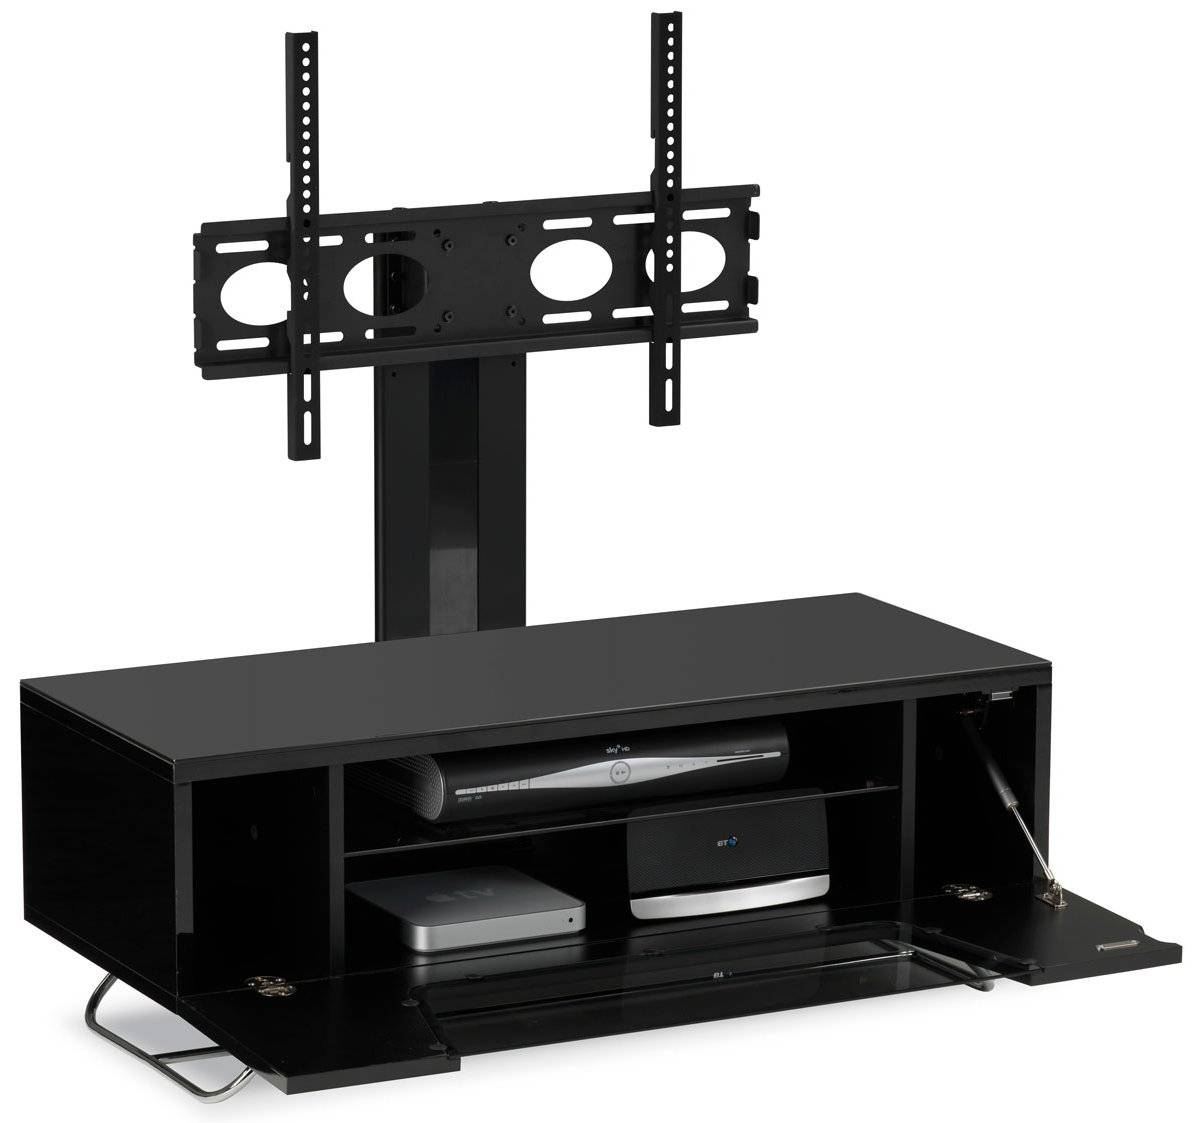 Alphason Chromium Black Cantilever Tv Stand Throughout Cantilever Tv Stands (View 1 of 15)